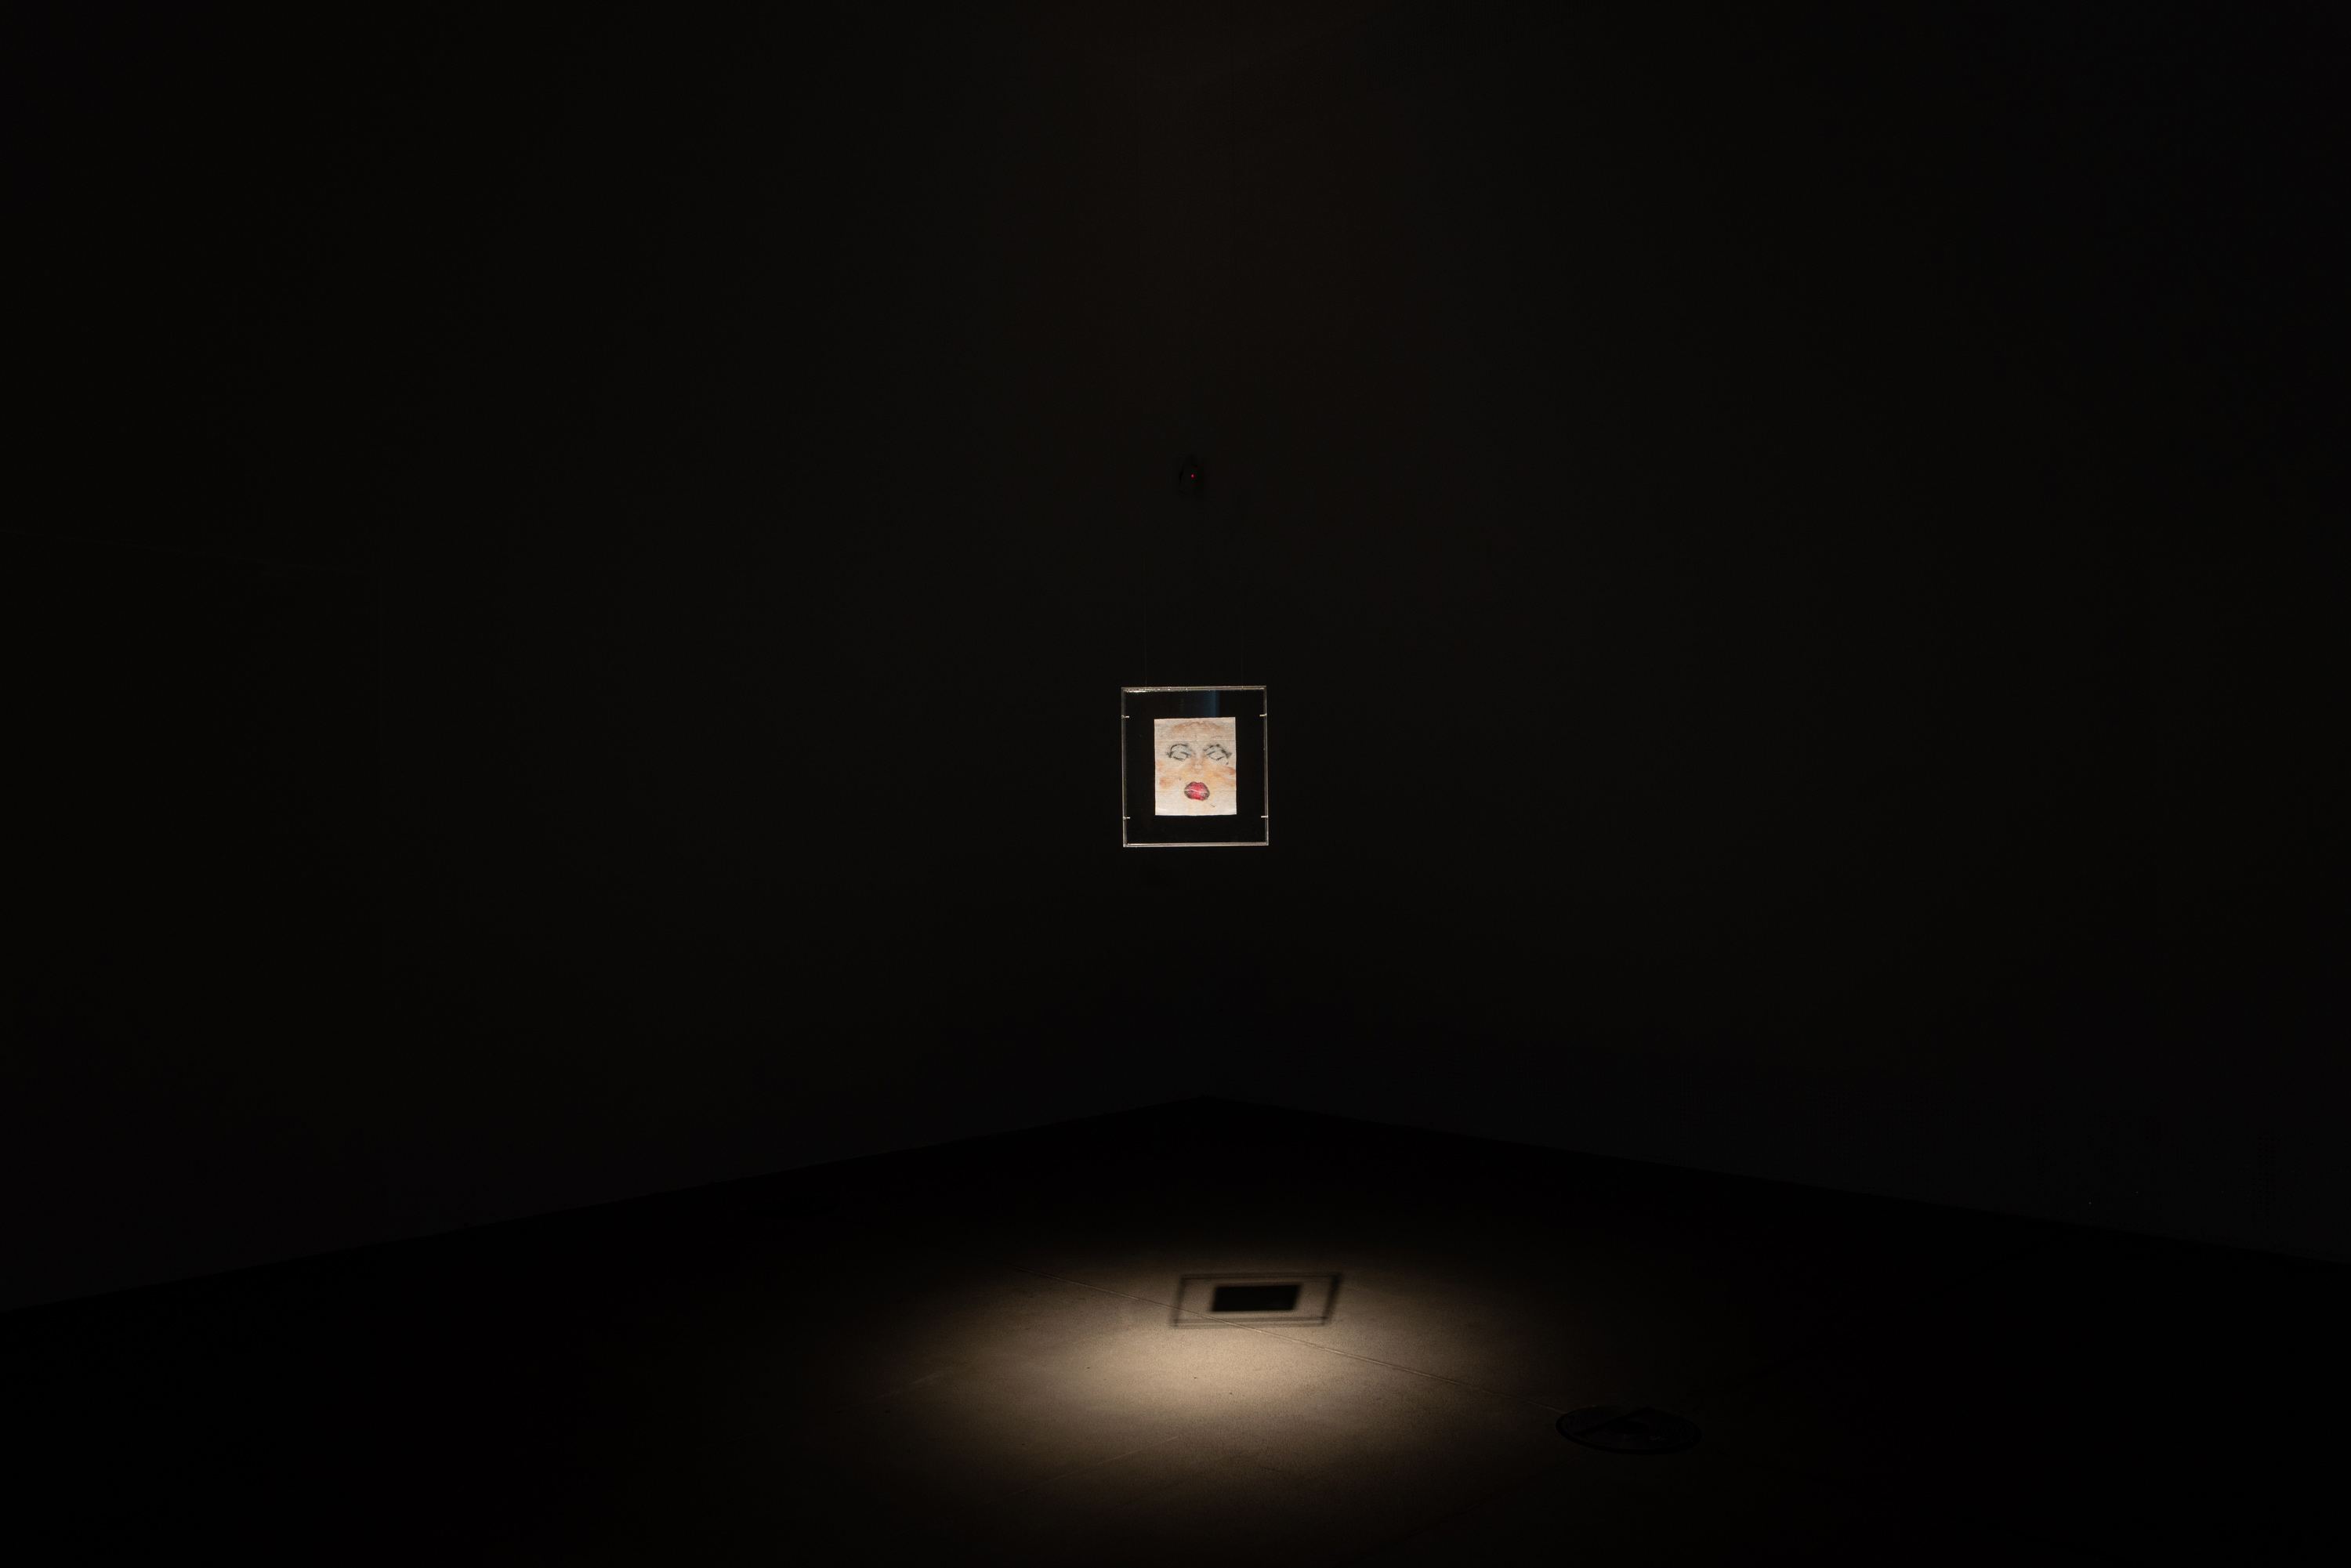 <p>Narrative Reflections on Looking</p>